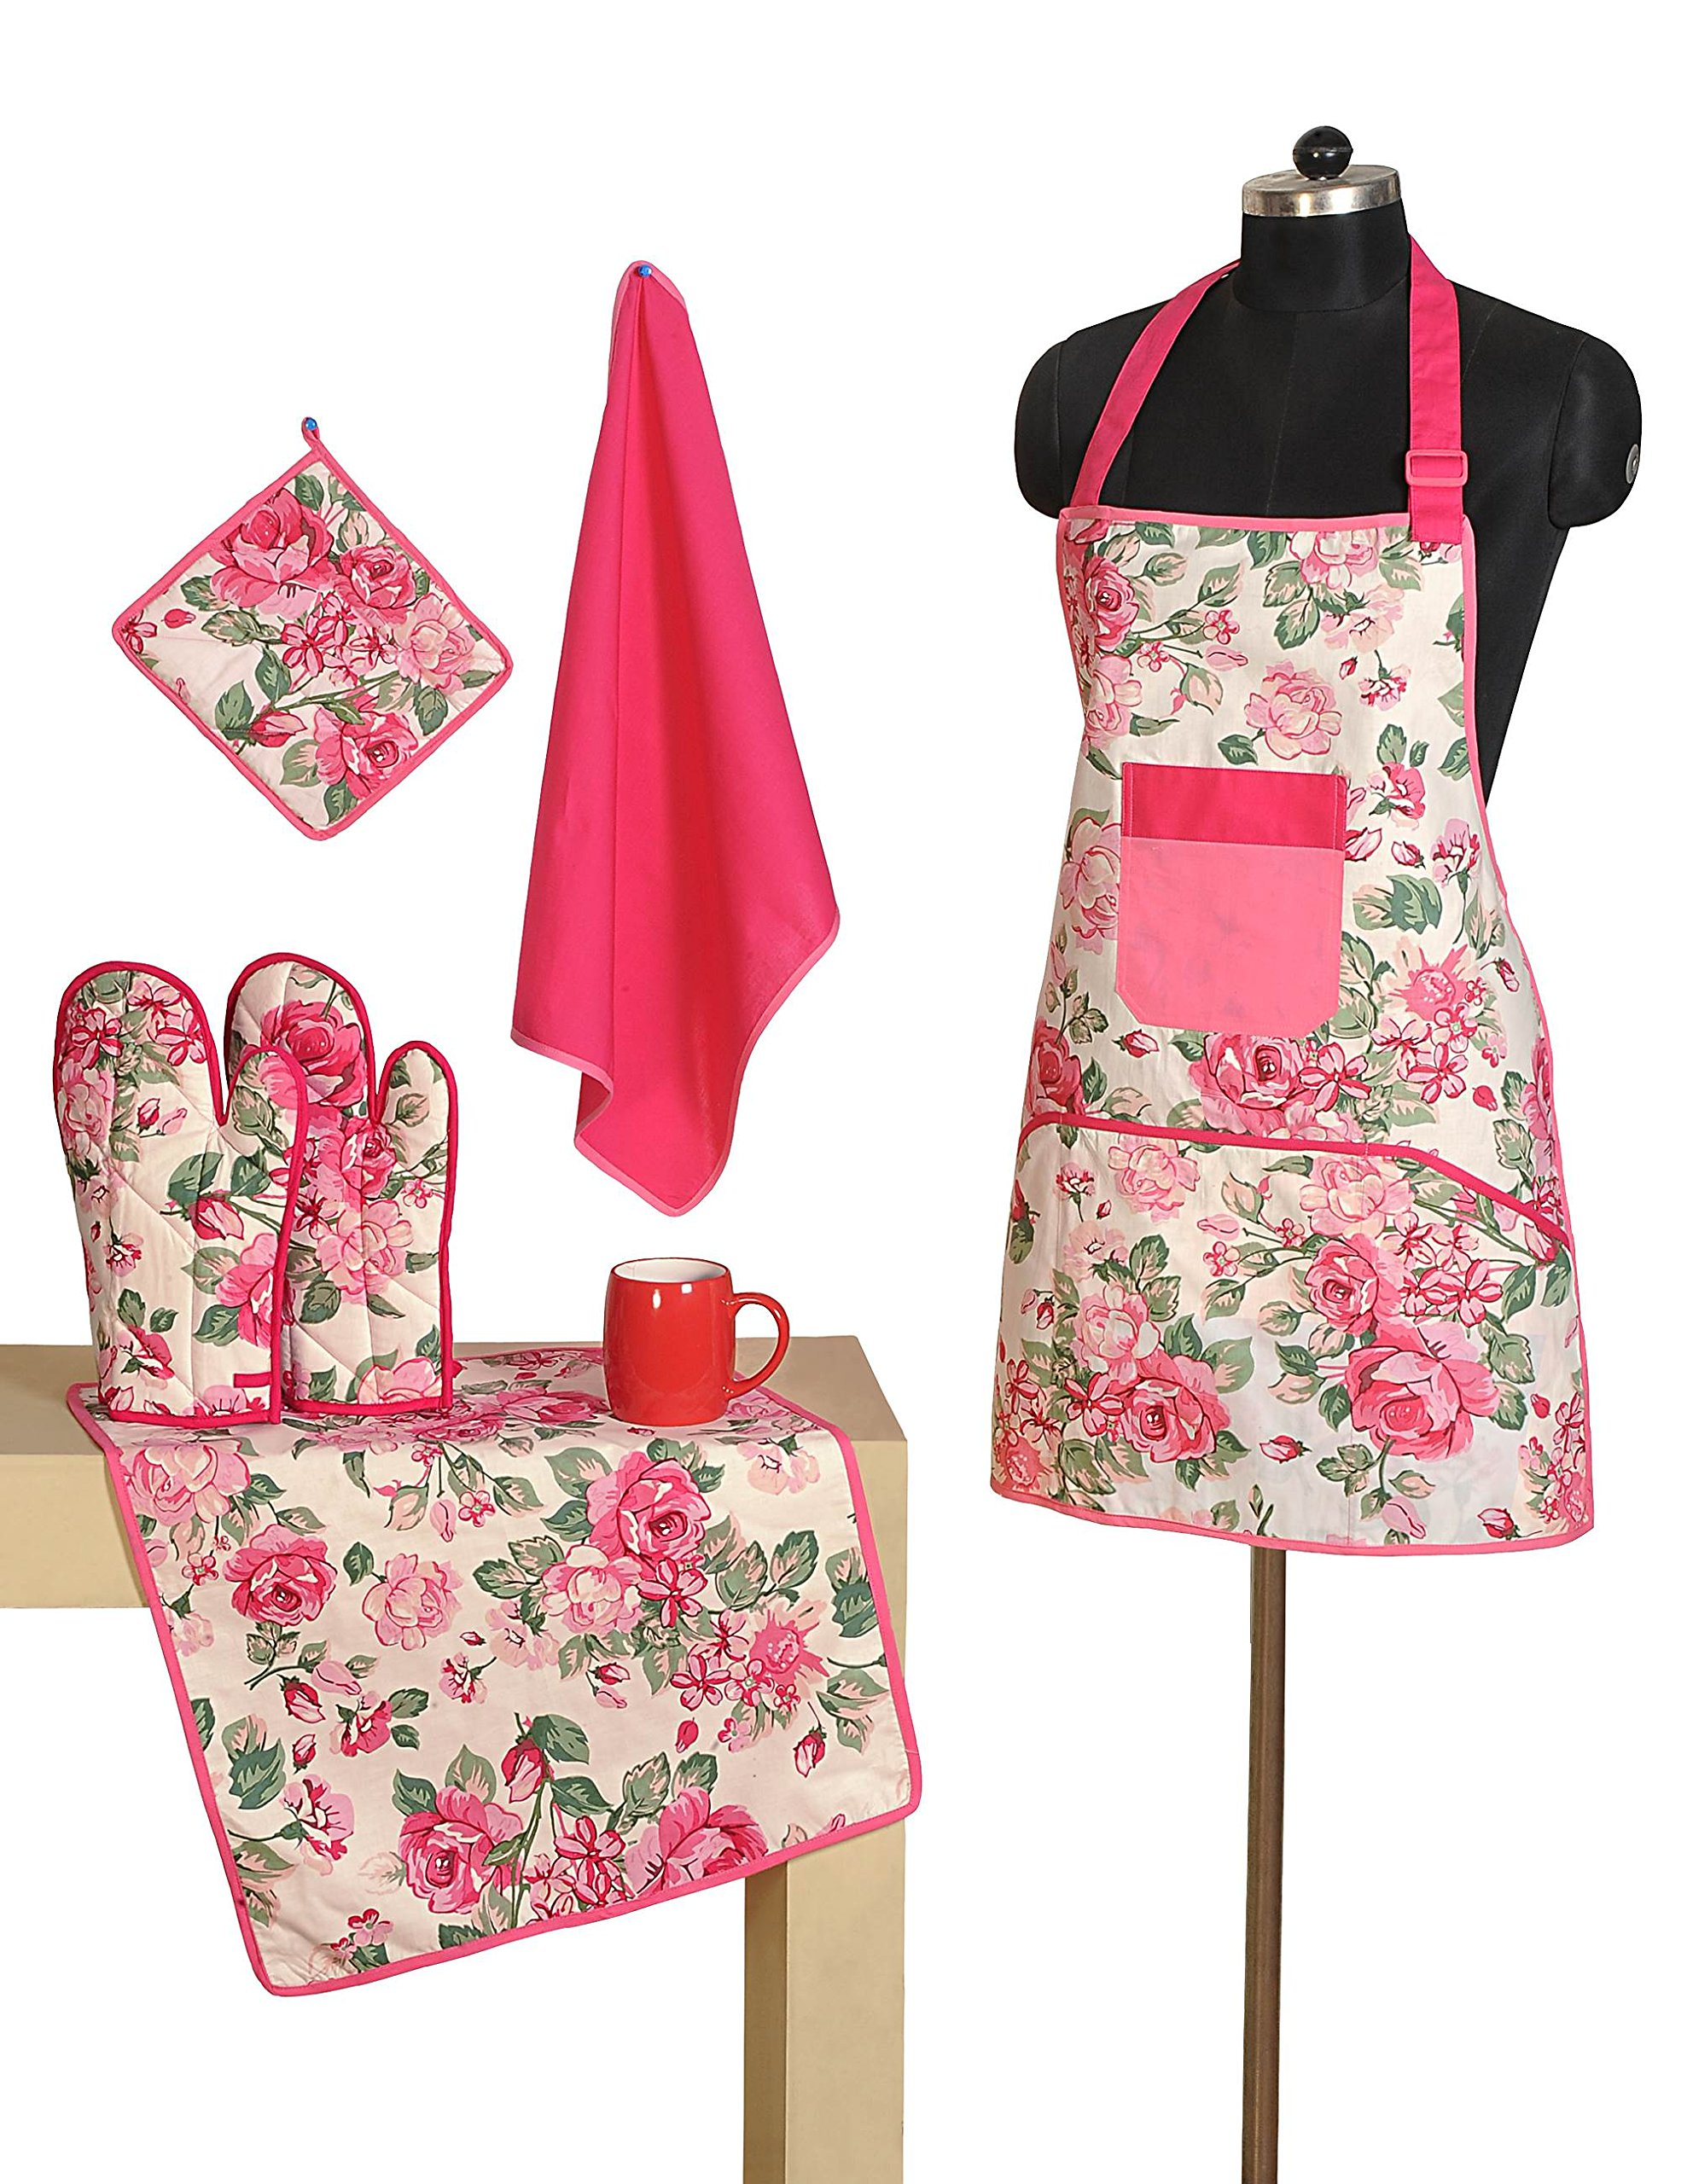 Handmade Patterned Cotton Chef's Apron Set with Pot Holder, Oven Mitts & Napkins - Perfect Home Kitchen Gift or Bridal Shower Gift by Swayam